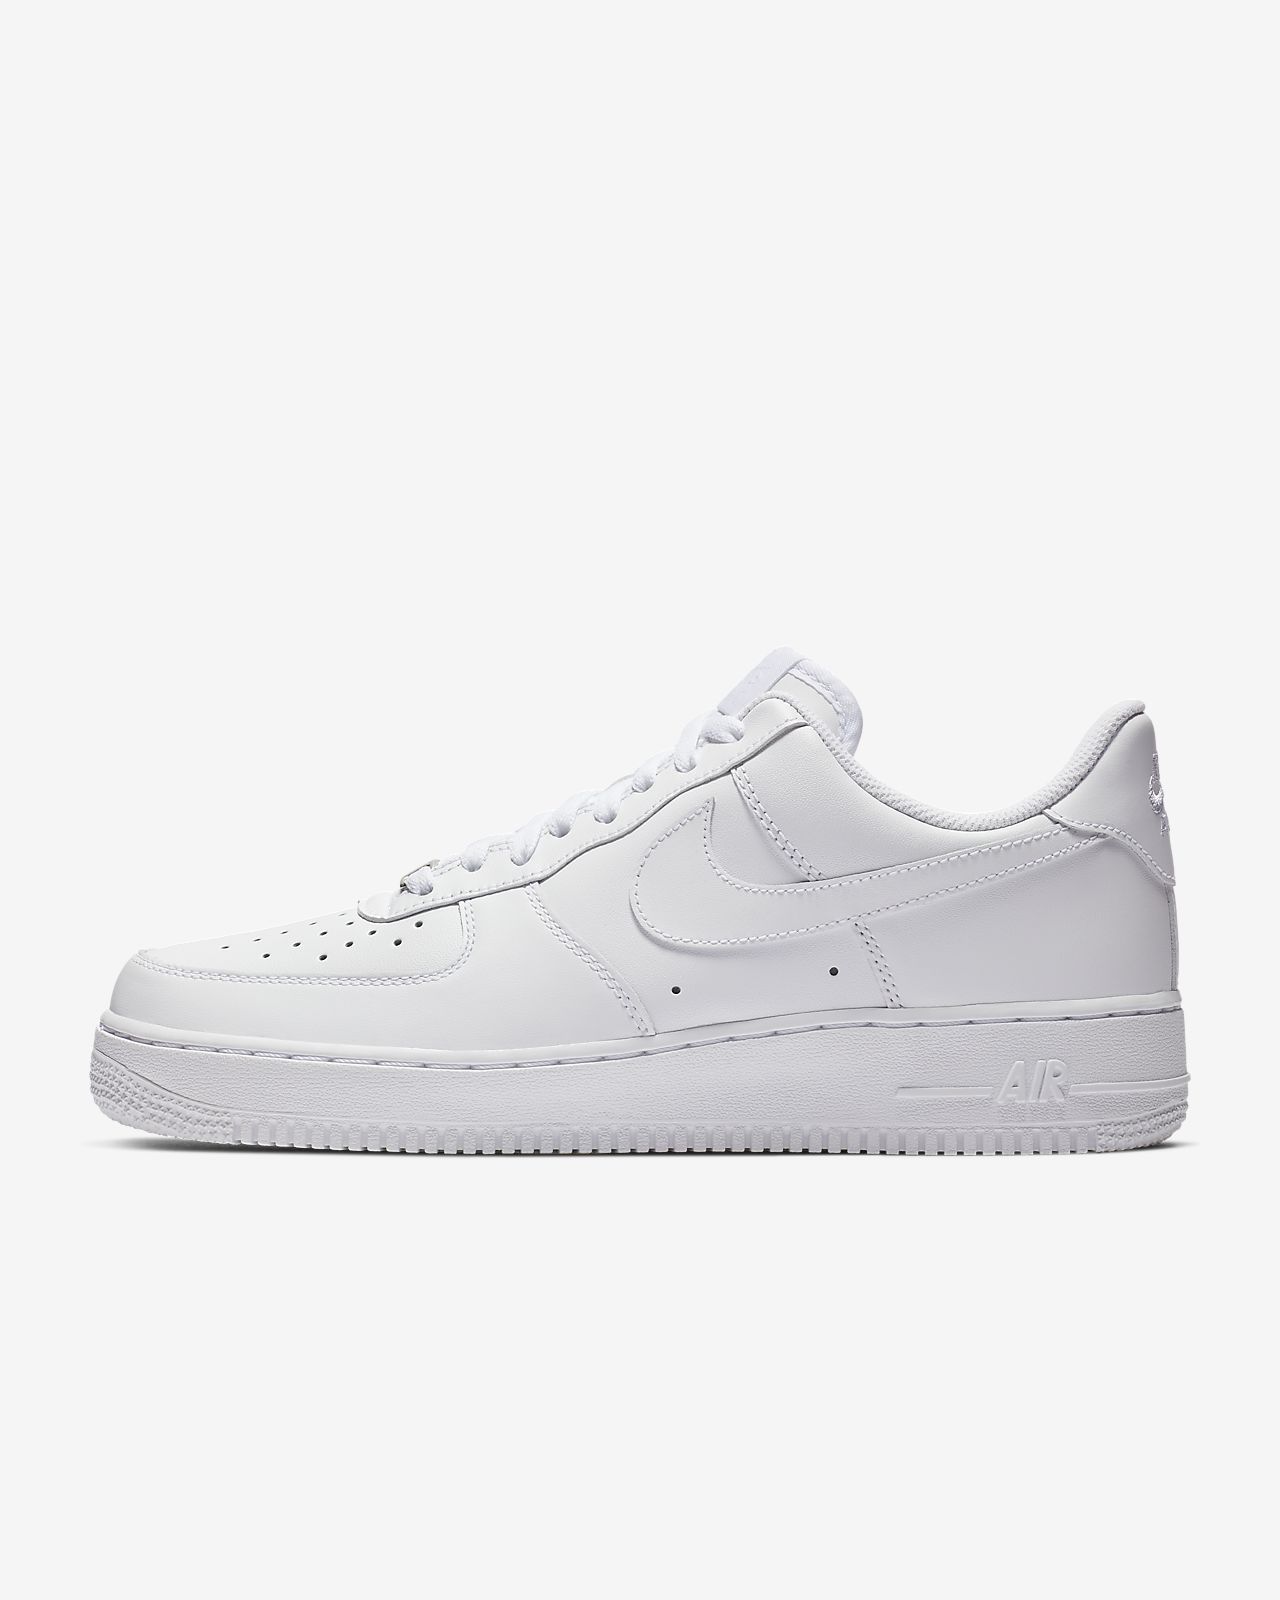 660a871dcf Nike Air Force 1 '07 Women's Shoe